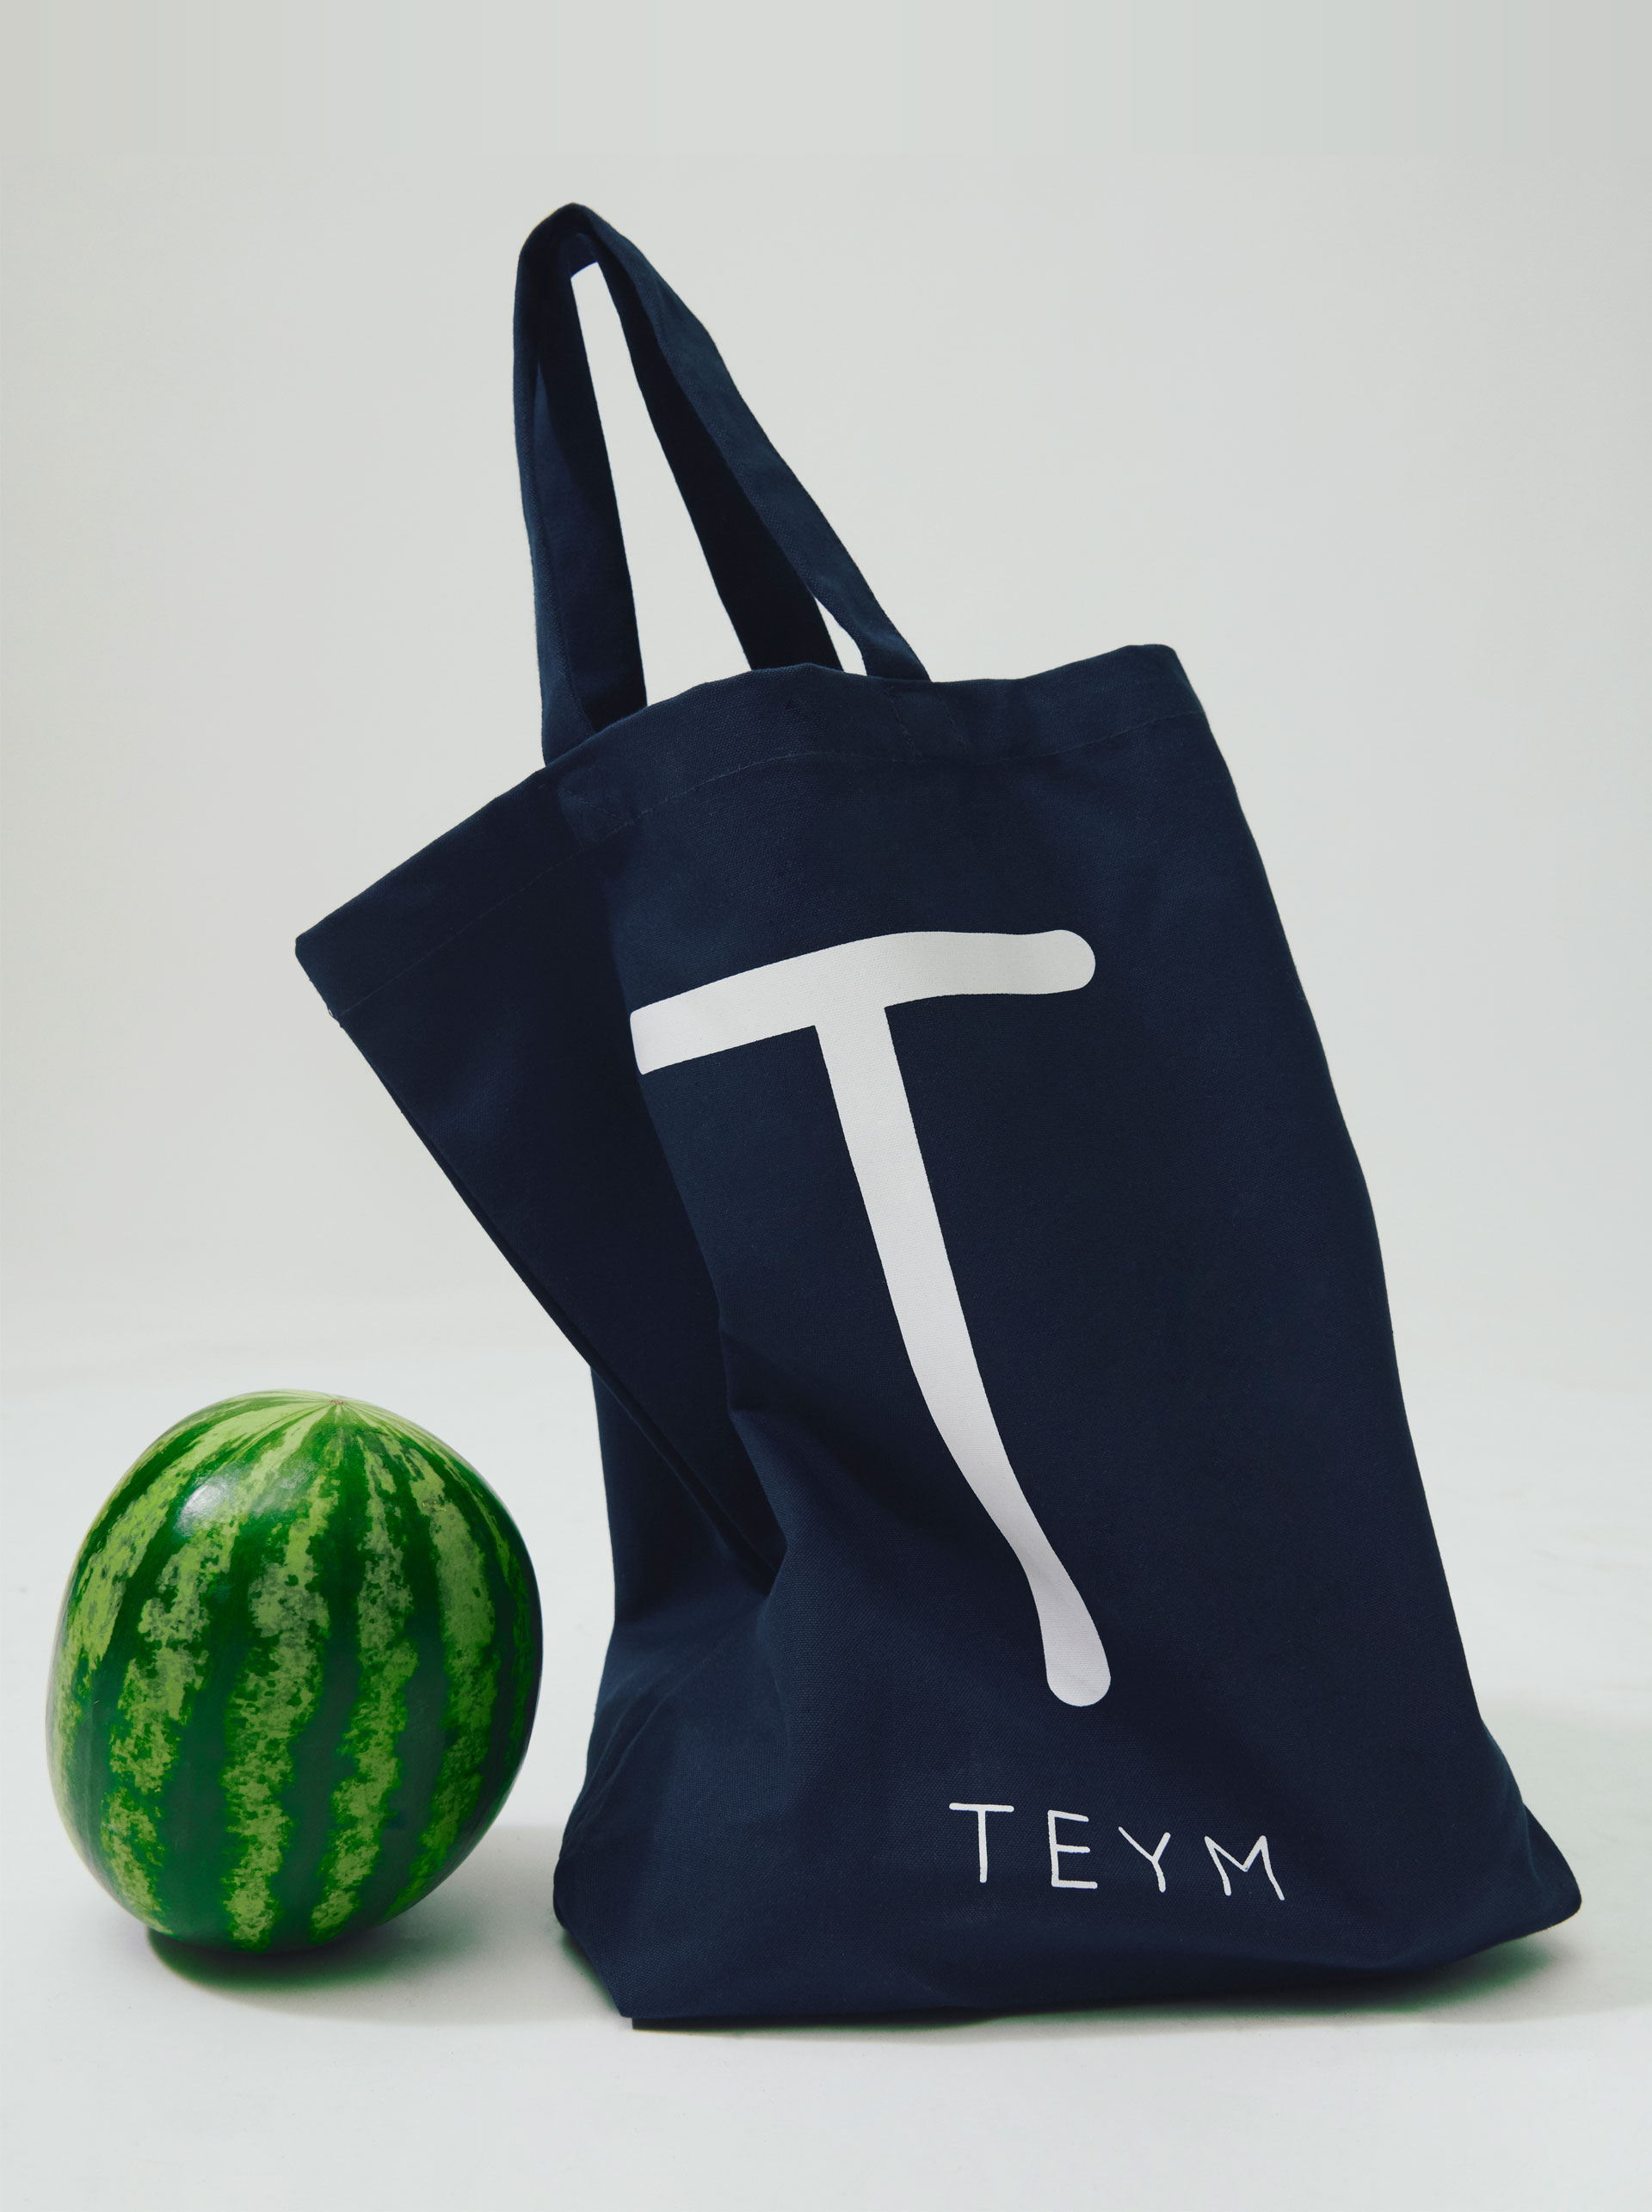 Teym - The Canvas Tote - 2